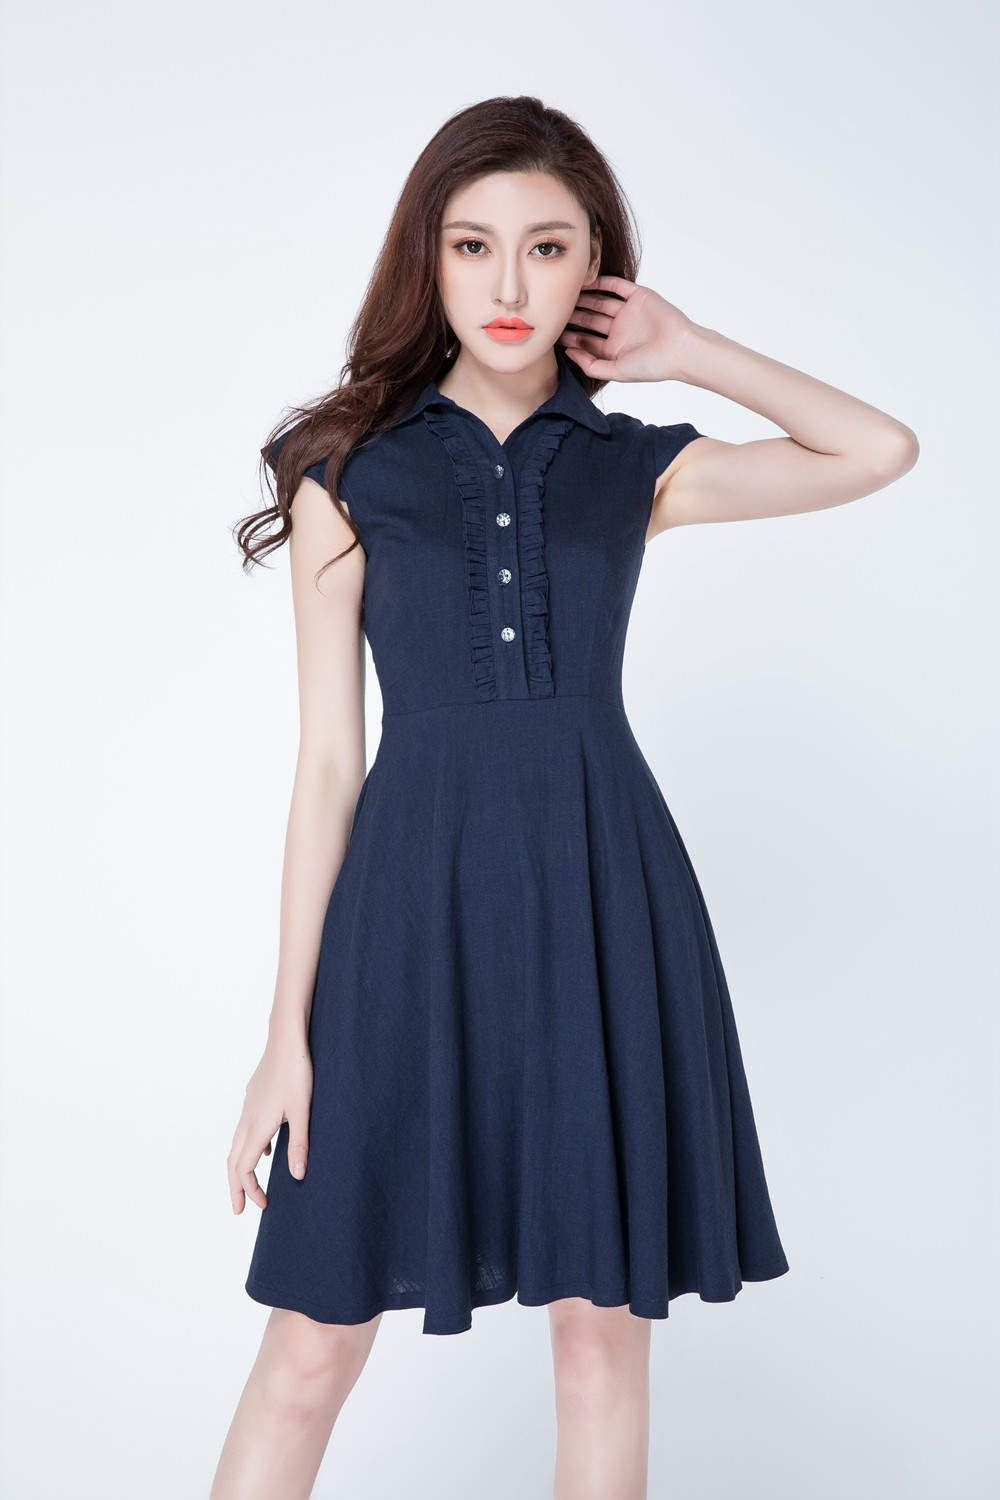 Navy blue short dress linen shirt dress cute dress cap sleeves